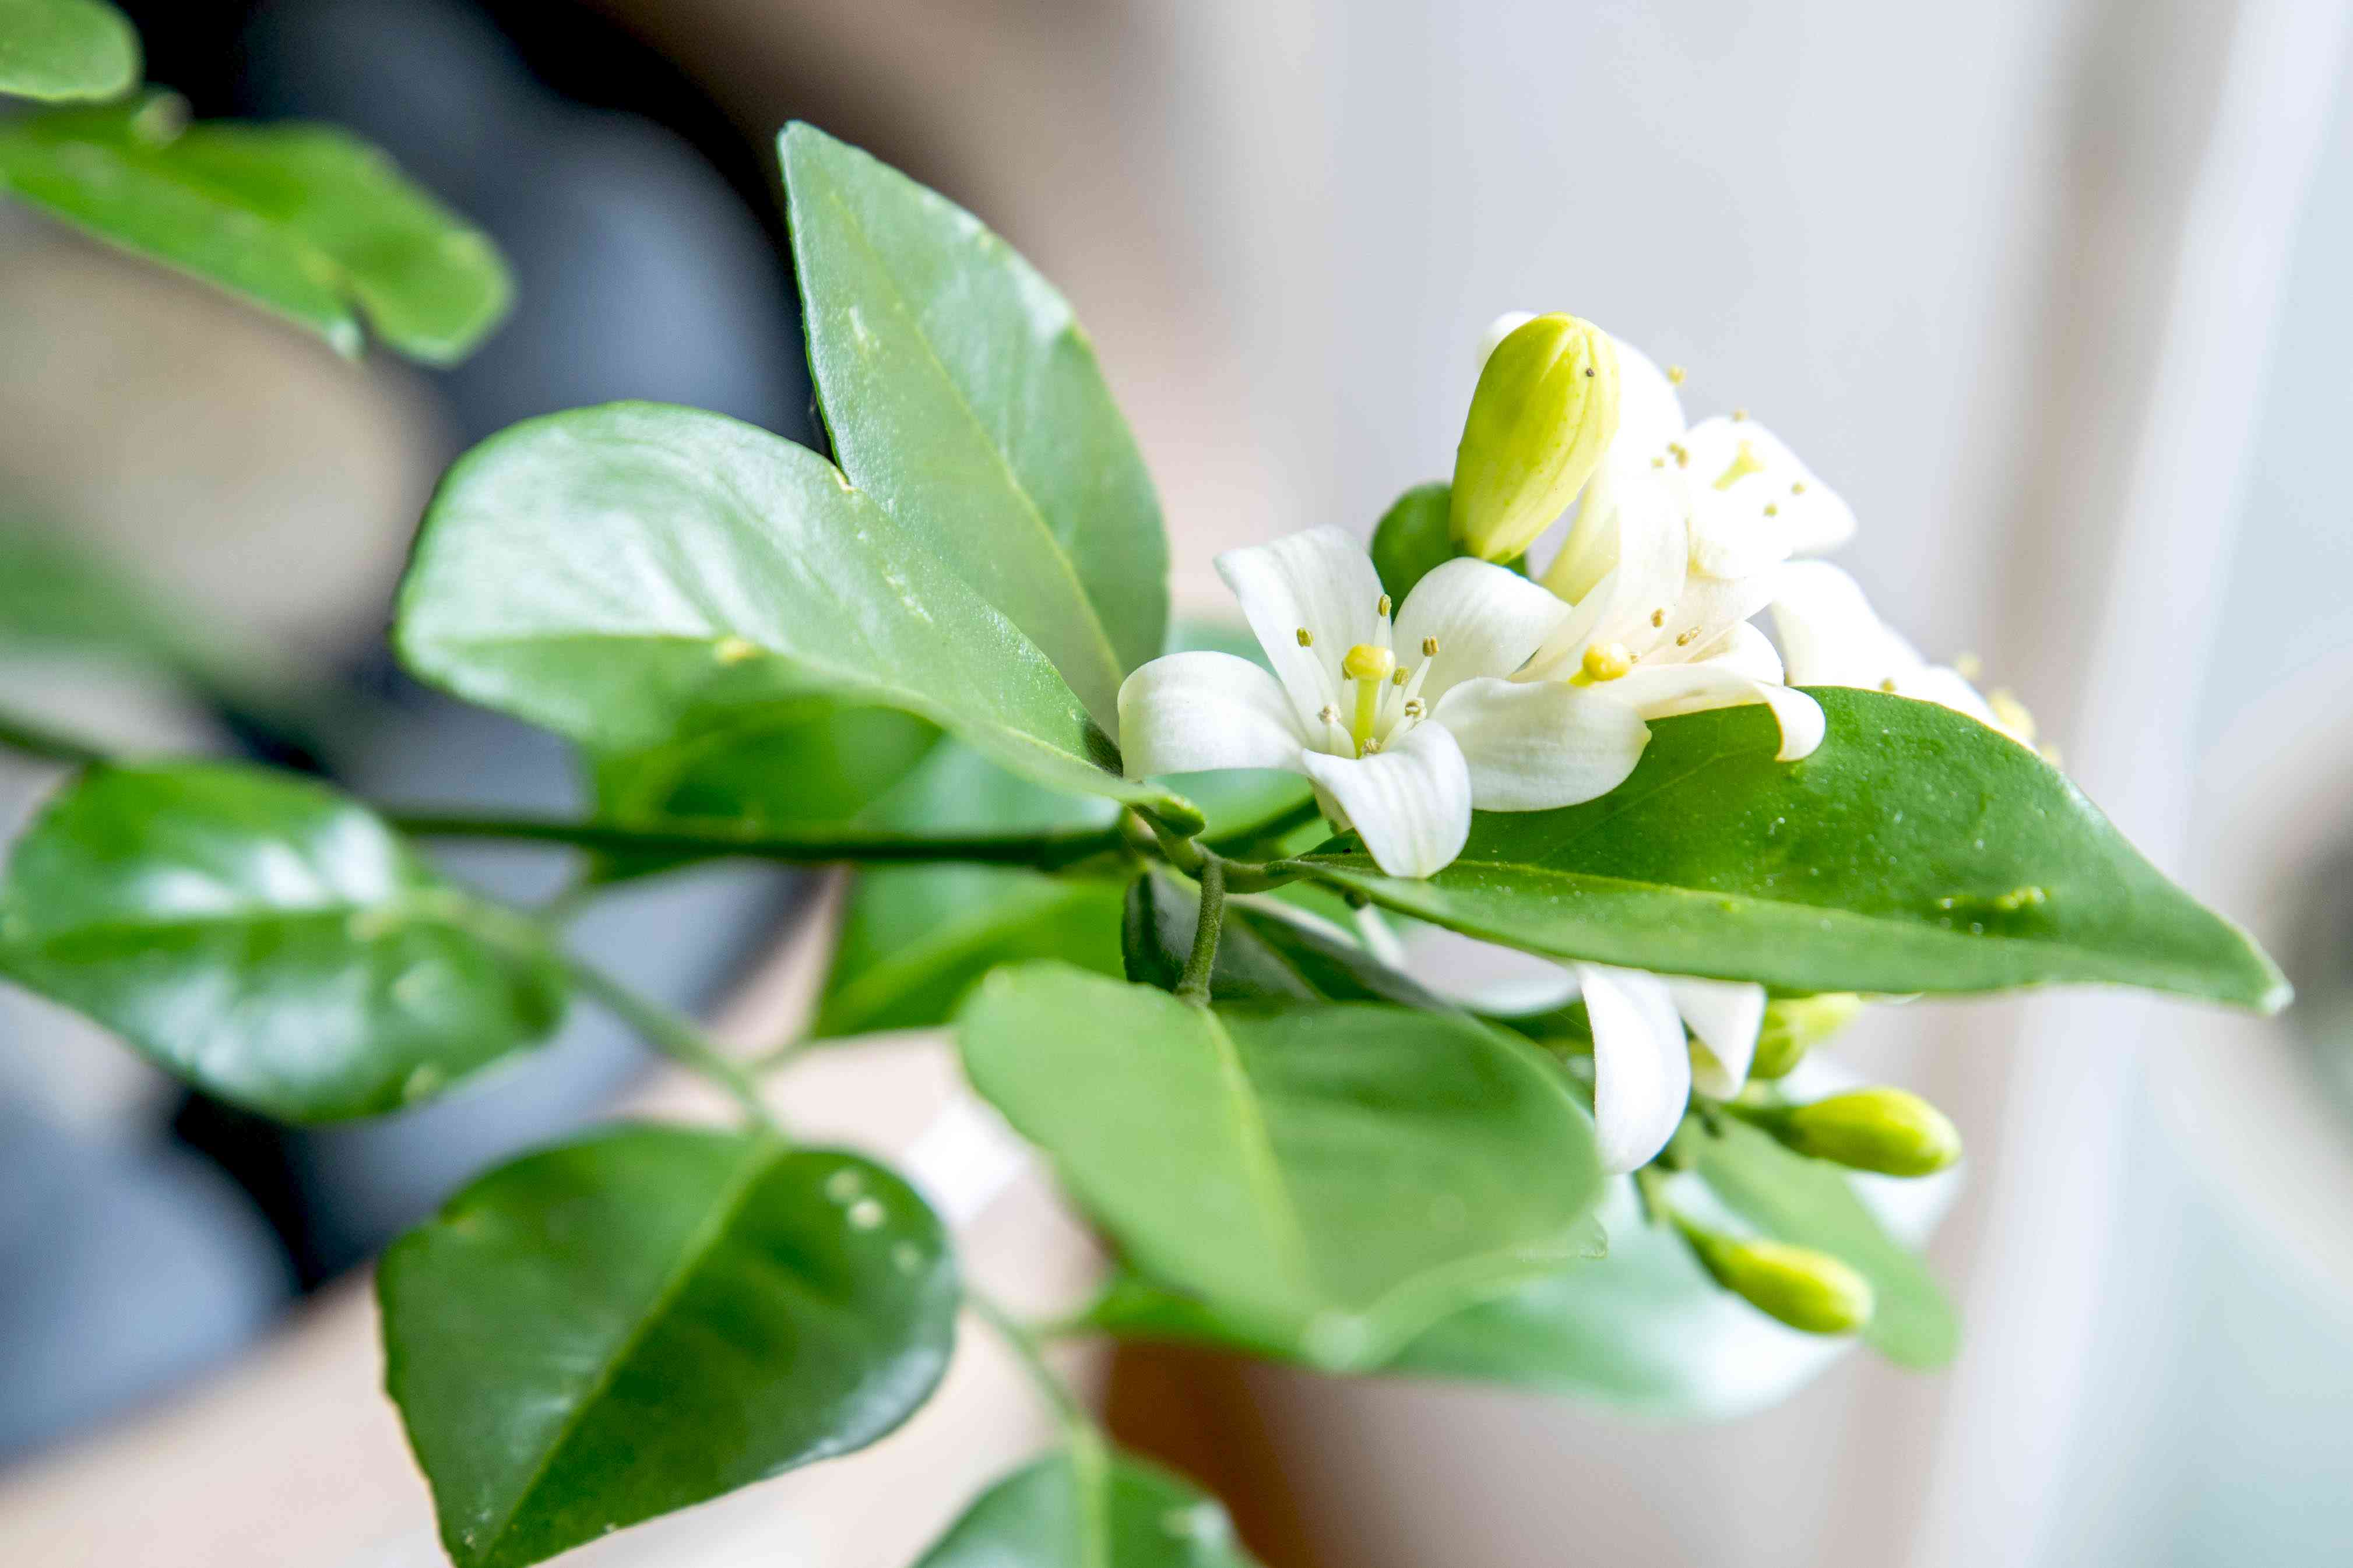 Orange jasmine plant branch with small white flowers and buds surrounded by leaves closeup